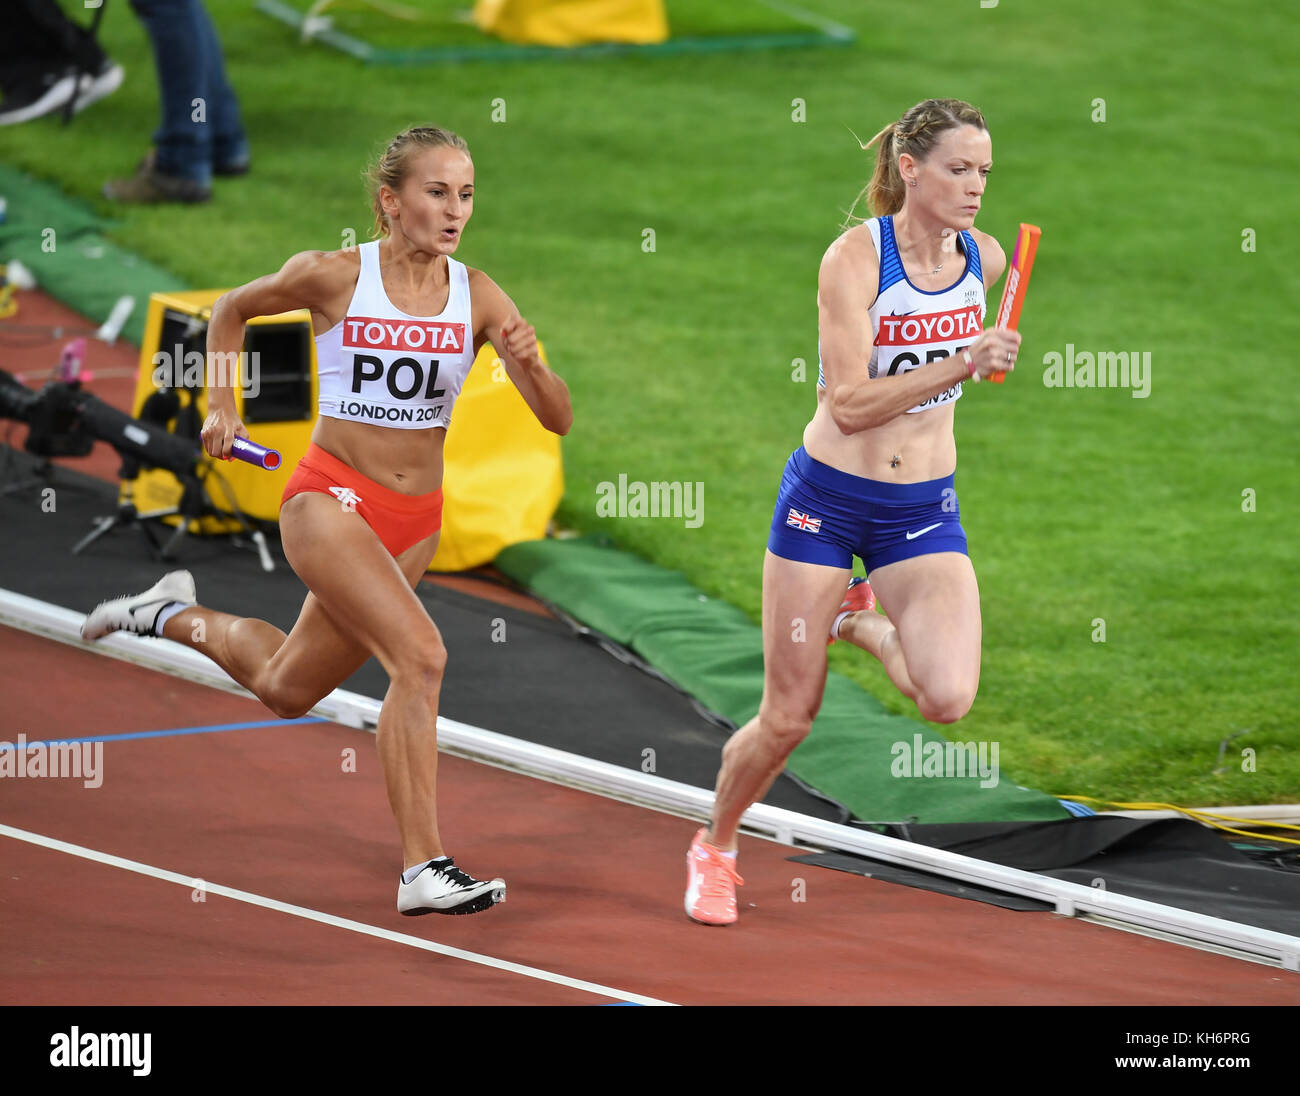 Alexandra Gaworska (Poland) and Eilidh Doyle (Great Britain) - 4x400 relays women - IAAF World Championships - London - Stock Image